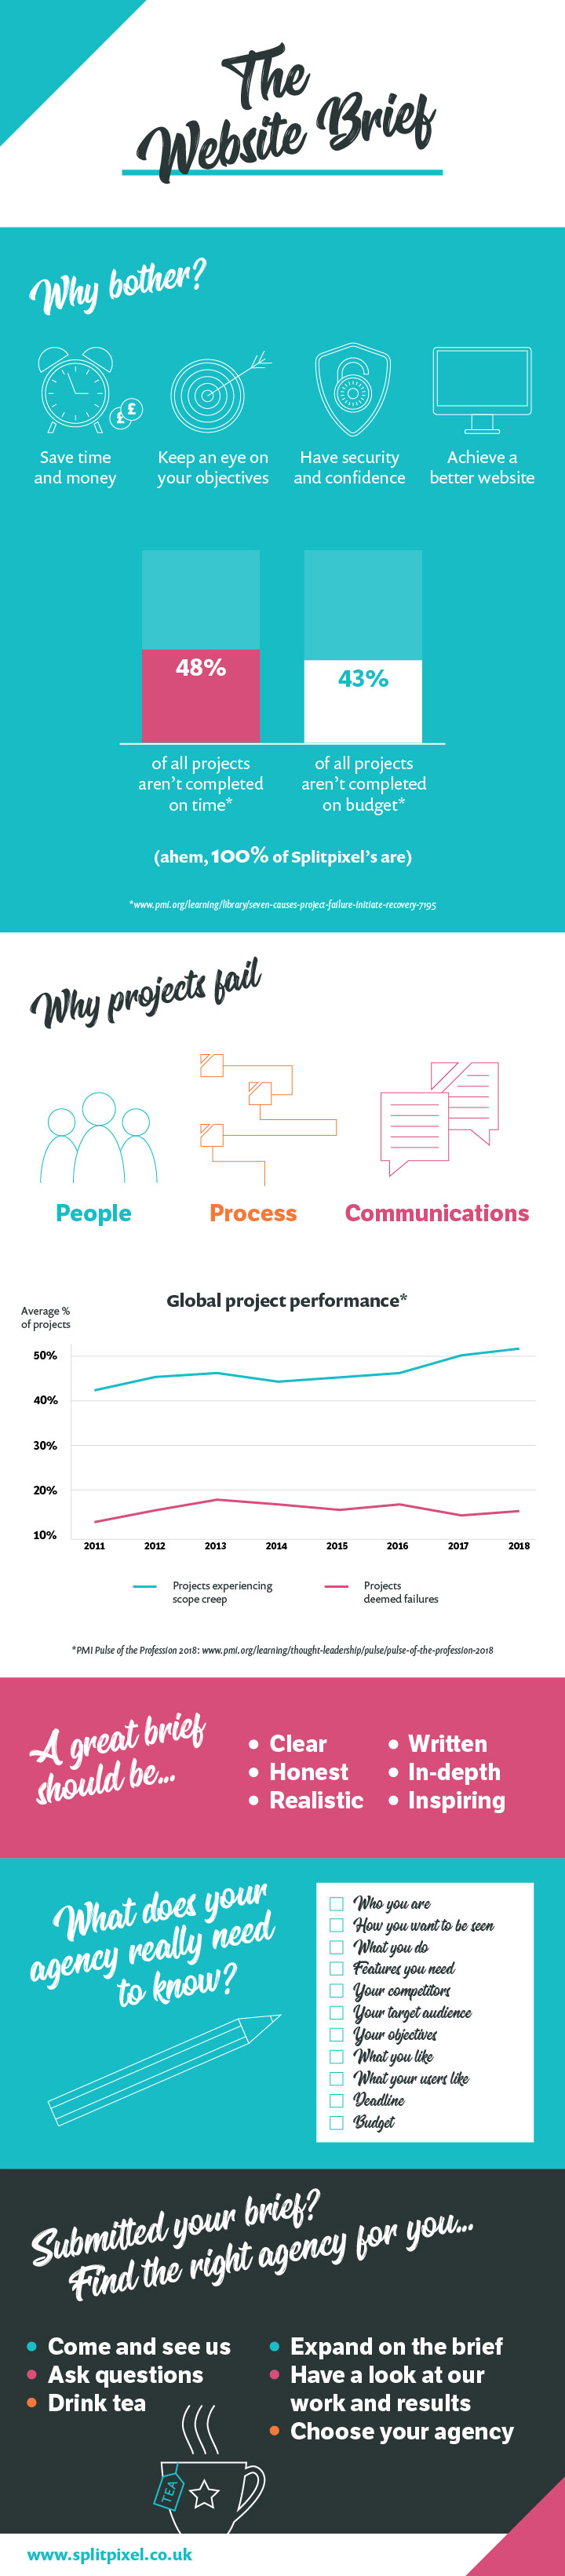 An infographic about the website brief - why bother, why projects fail, what a great brief should be, what your agency needs to know and next steps.